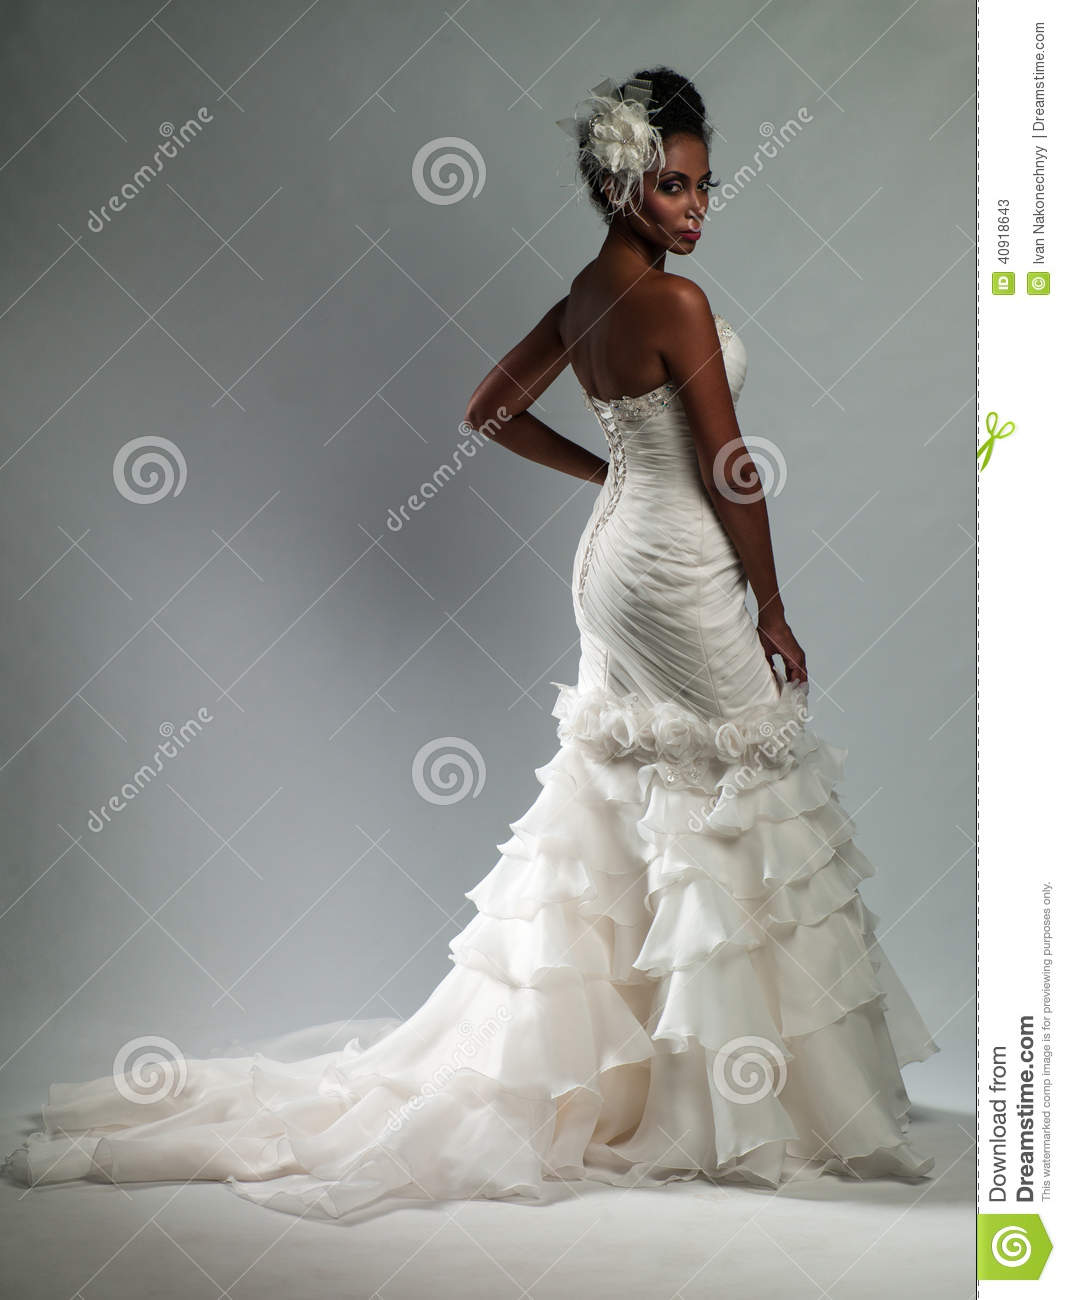 stock photo african american woman wedding dress young beautiful image african american wedding dresses African American woman in a wedding dress